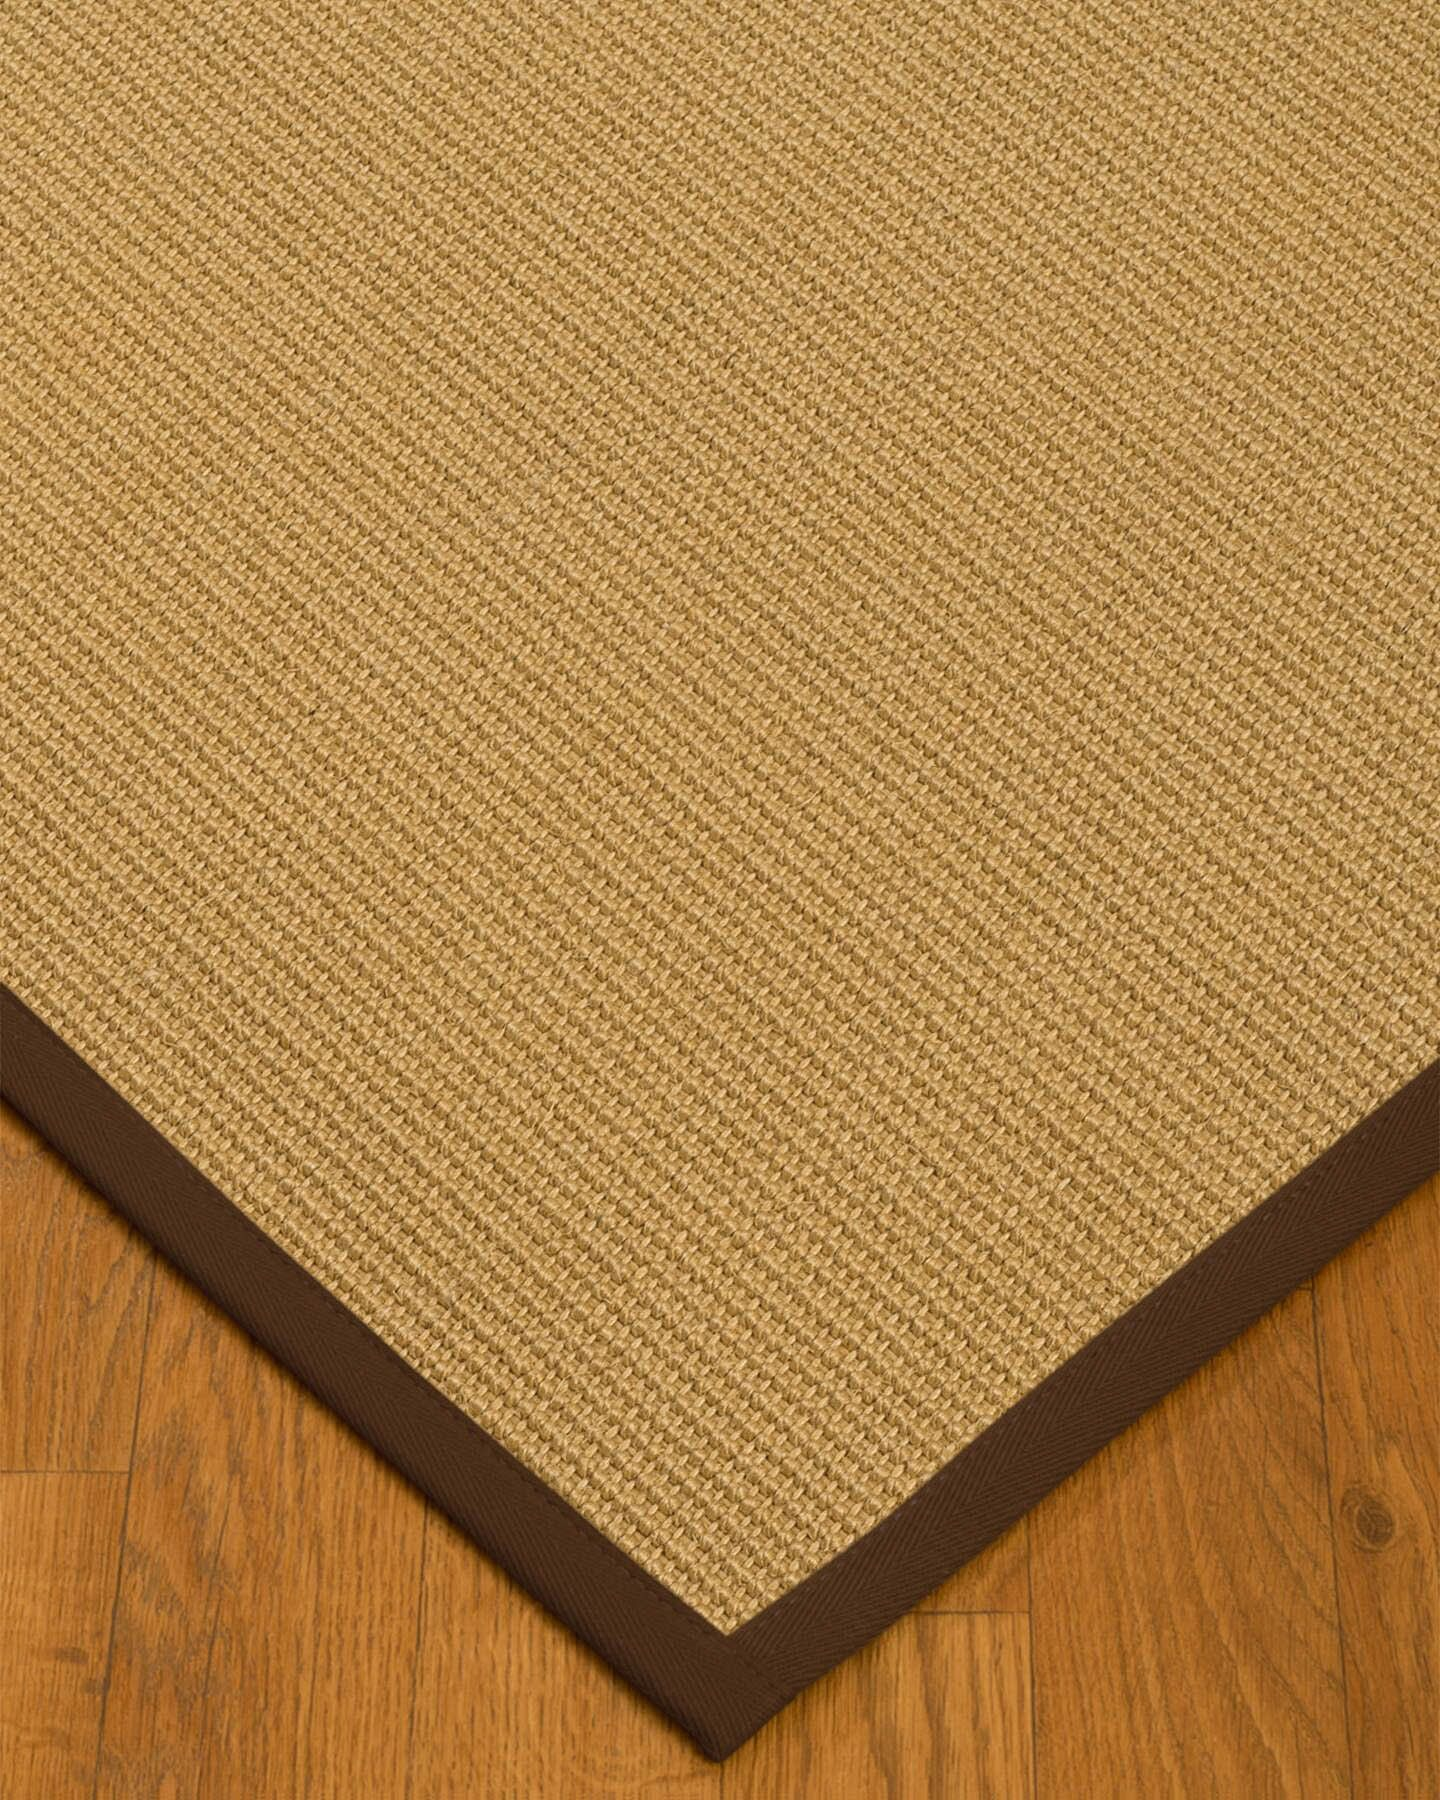 Buser Hand-Woven Beige Area Rug Rug Size: Rectangle 6' x 9'